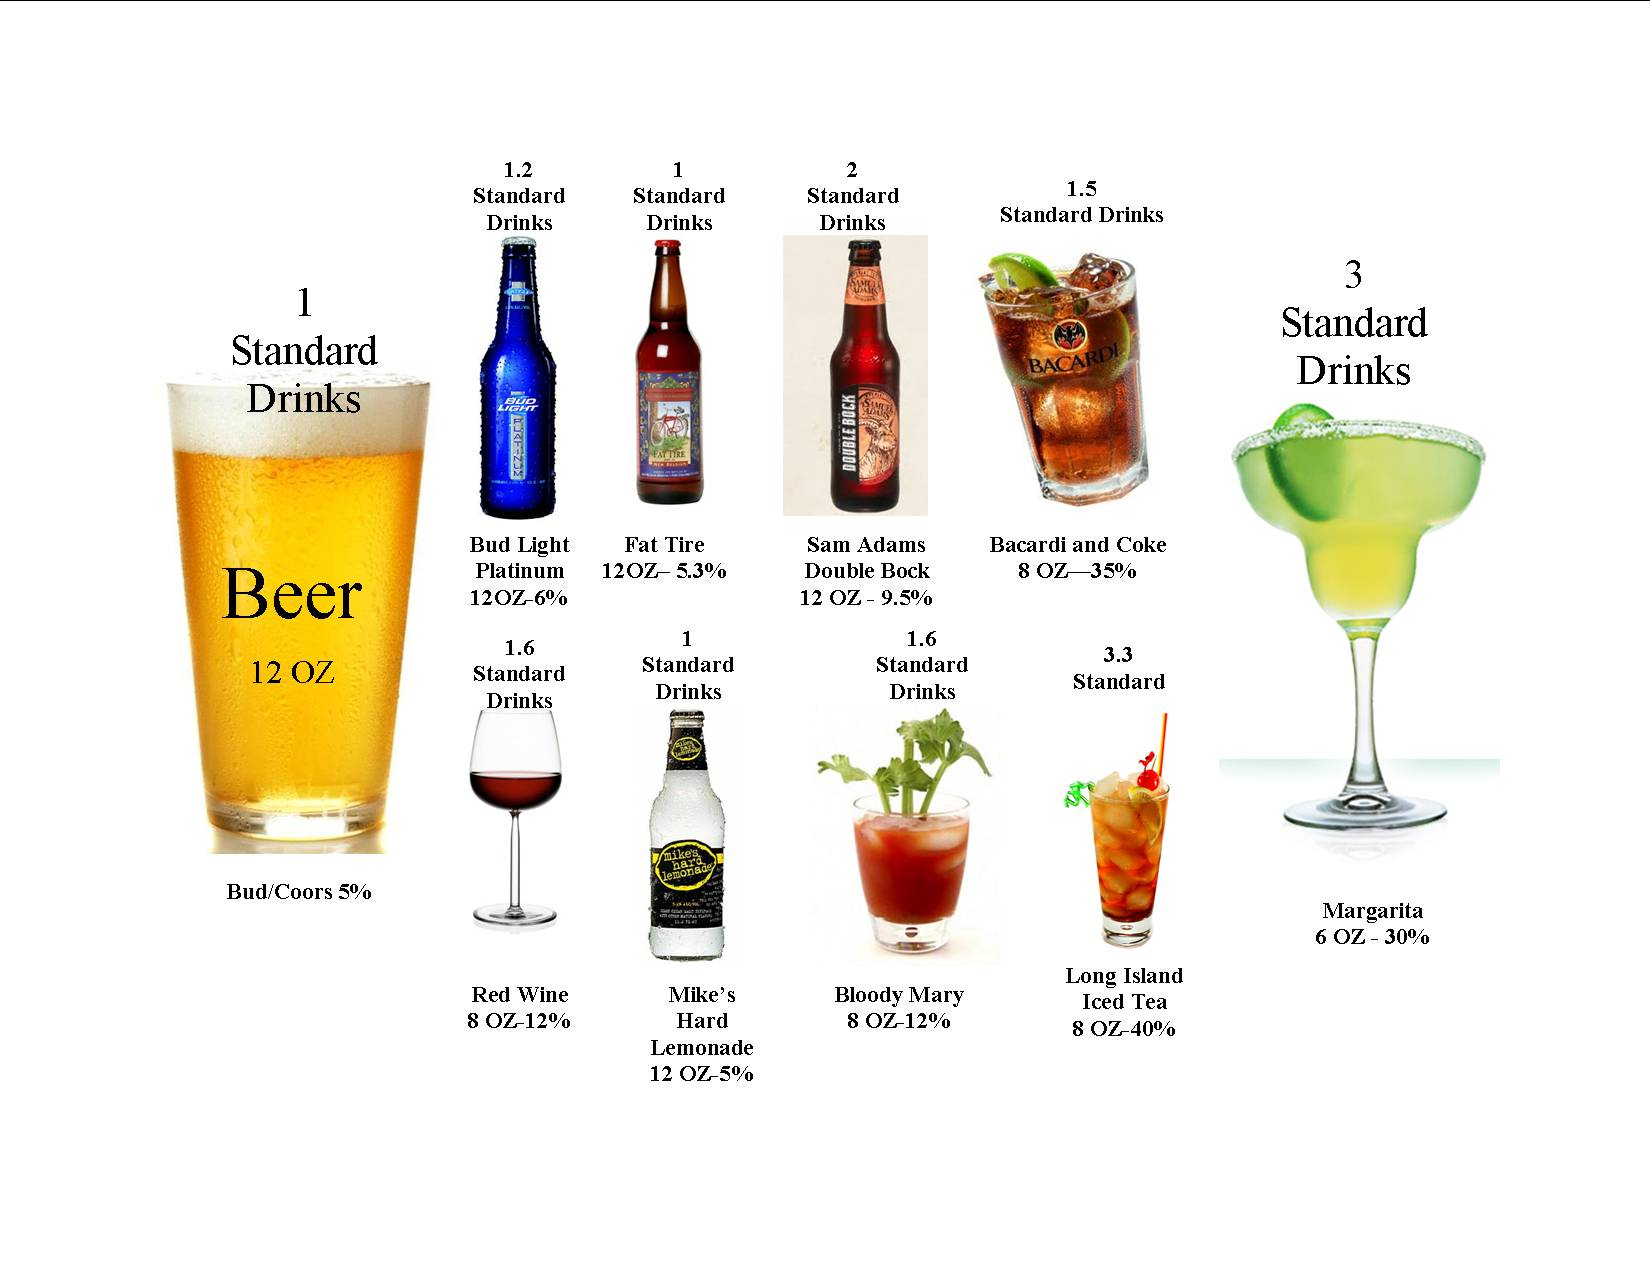 Alcohol content of drinks